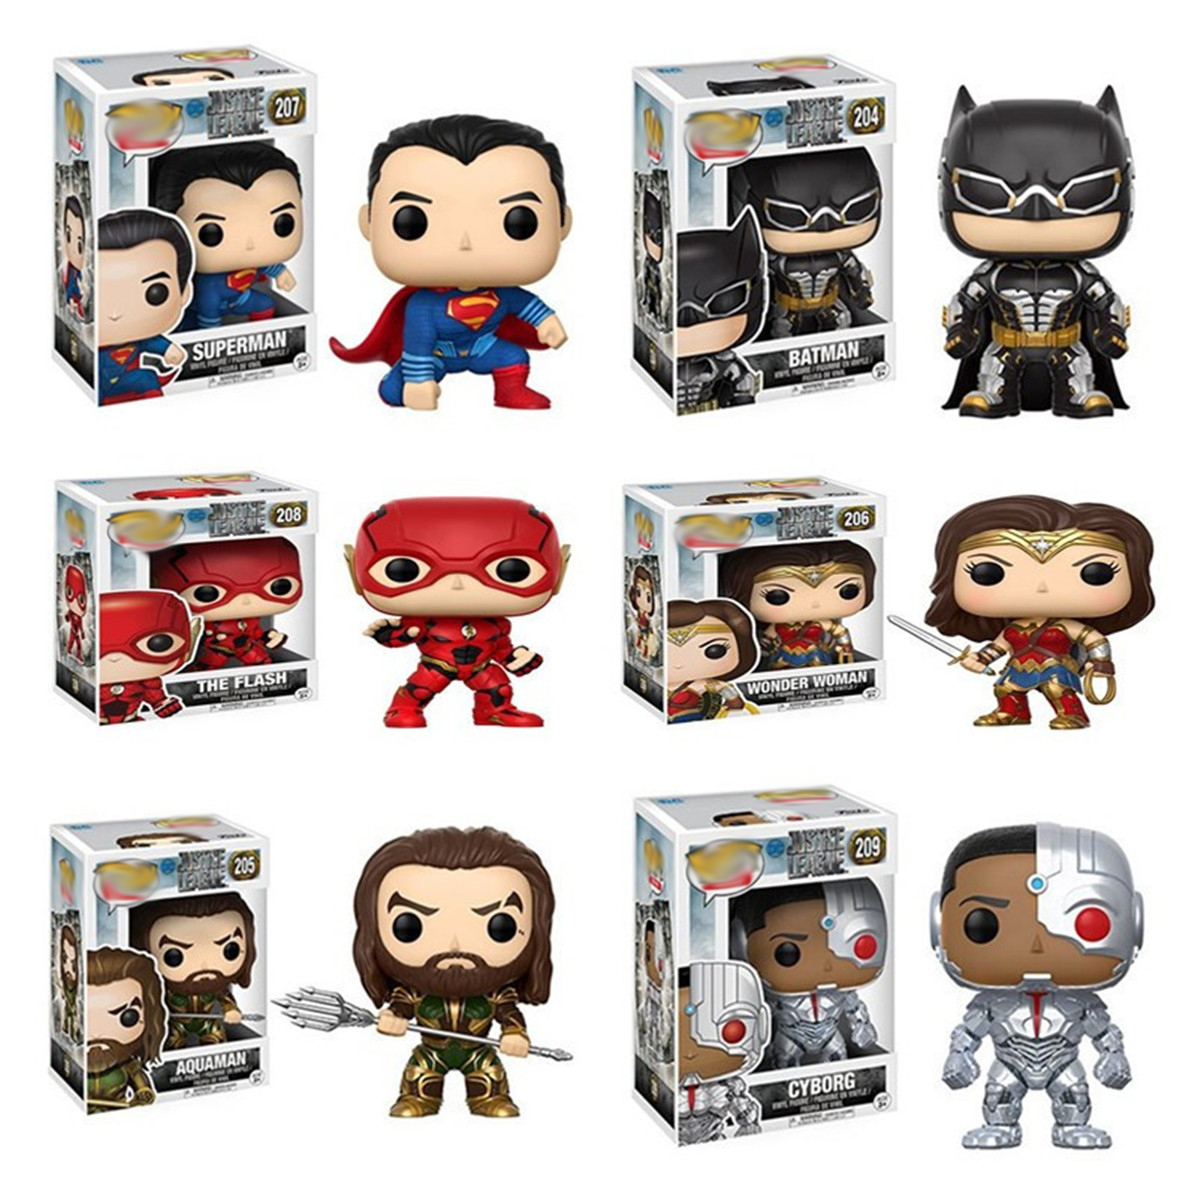 Justice Alliance Funkos Pops Aquaman figurine d'action Mini Flash homme merveille femme Aquaman Superman Batman Funkos Pops figurine d'action